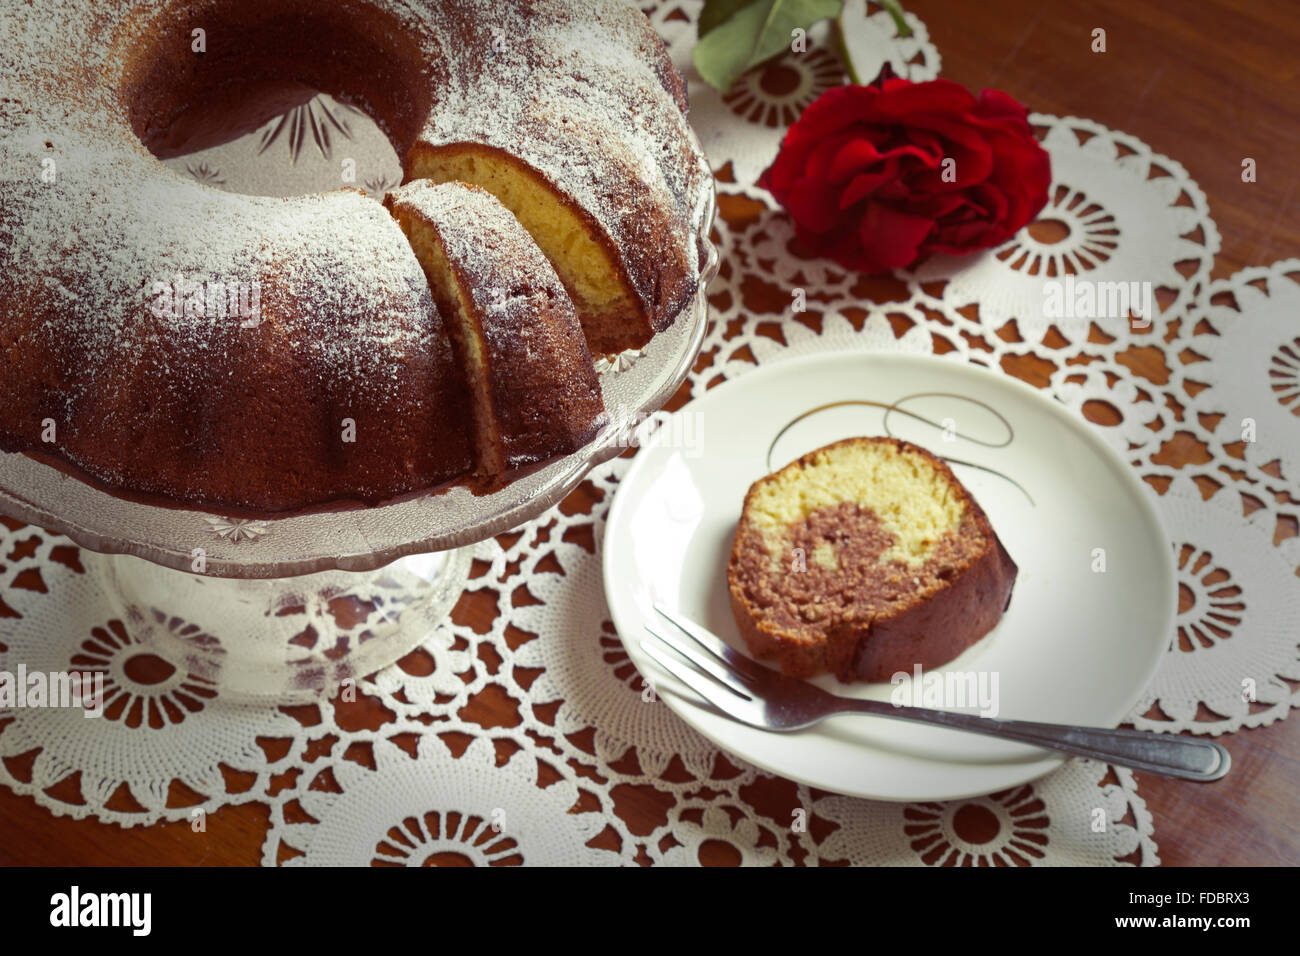 Traditionelle Kuchen Stockbild